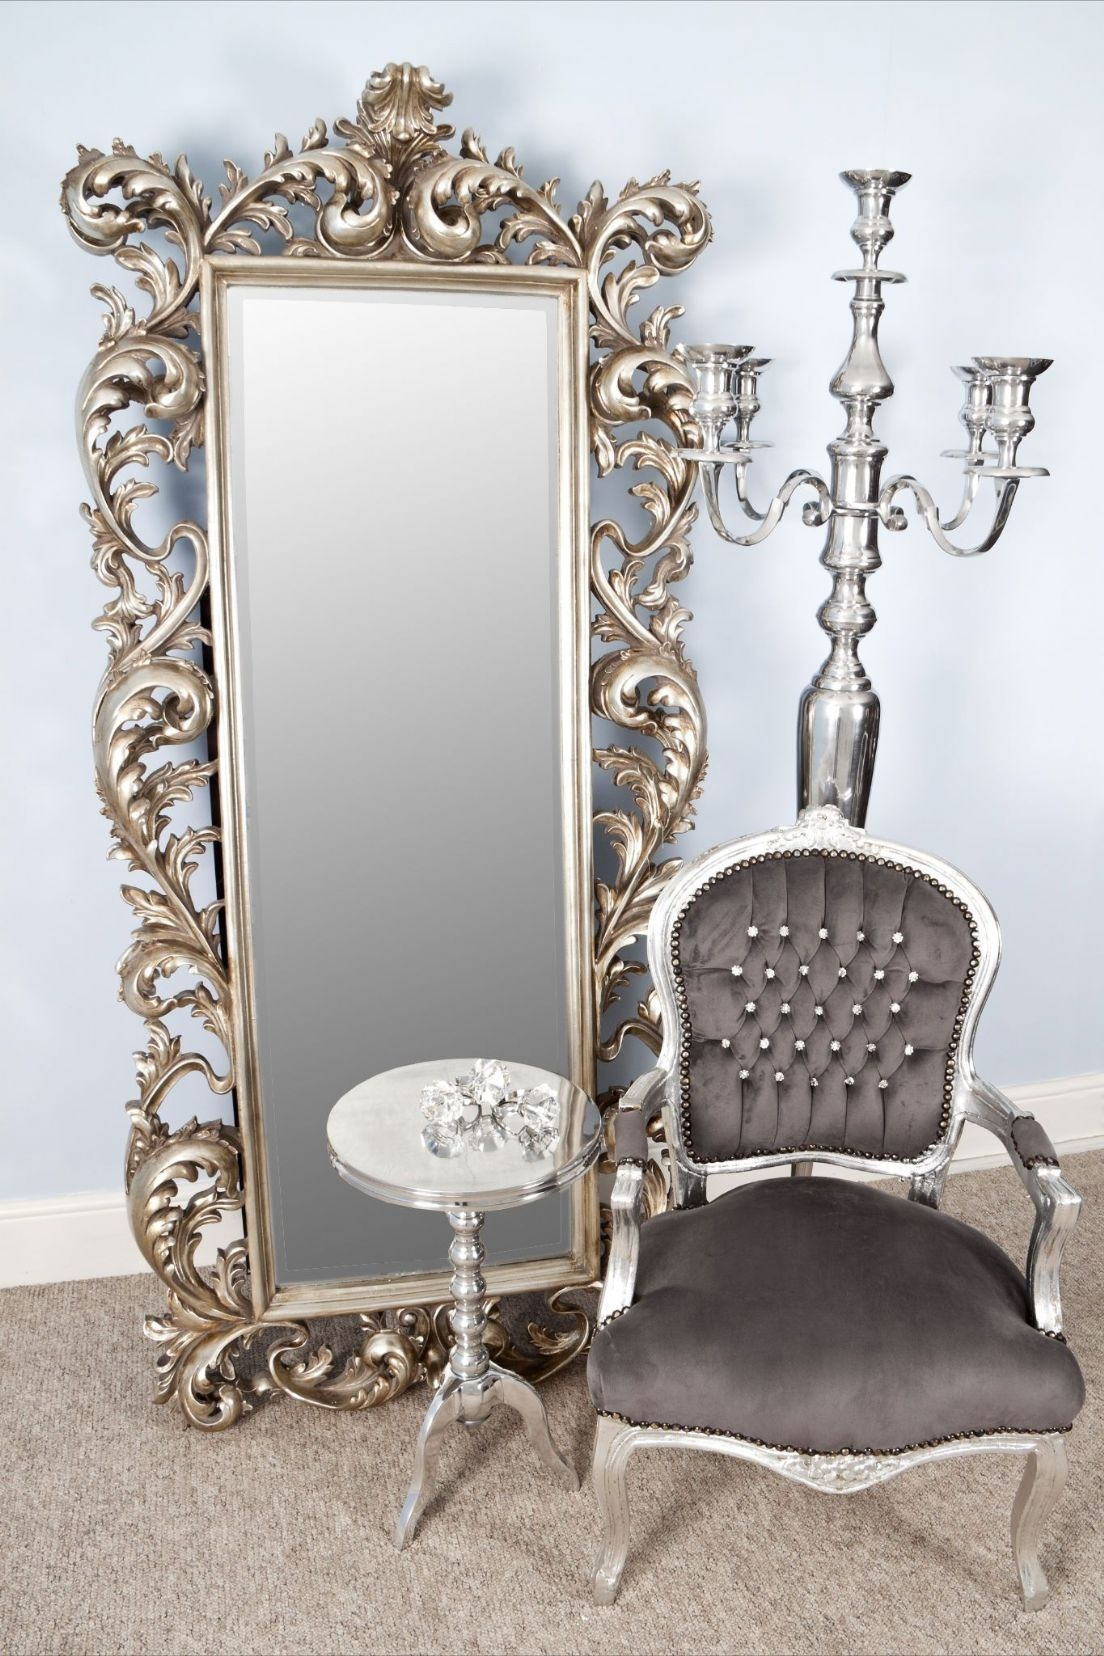 Bedroom Furniture Standing Mirror Black Mirror Antique Wall Regarding Antique Wall Mirrors For Sale (Image 2 of 15)